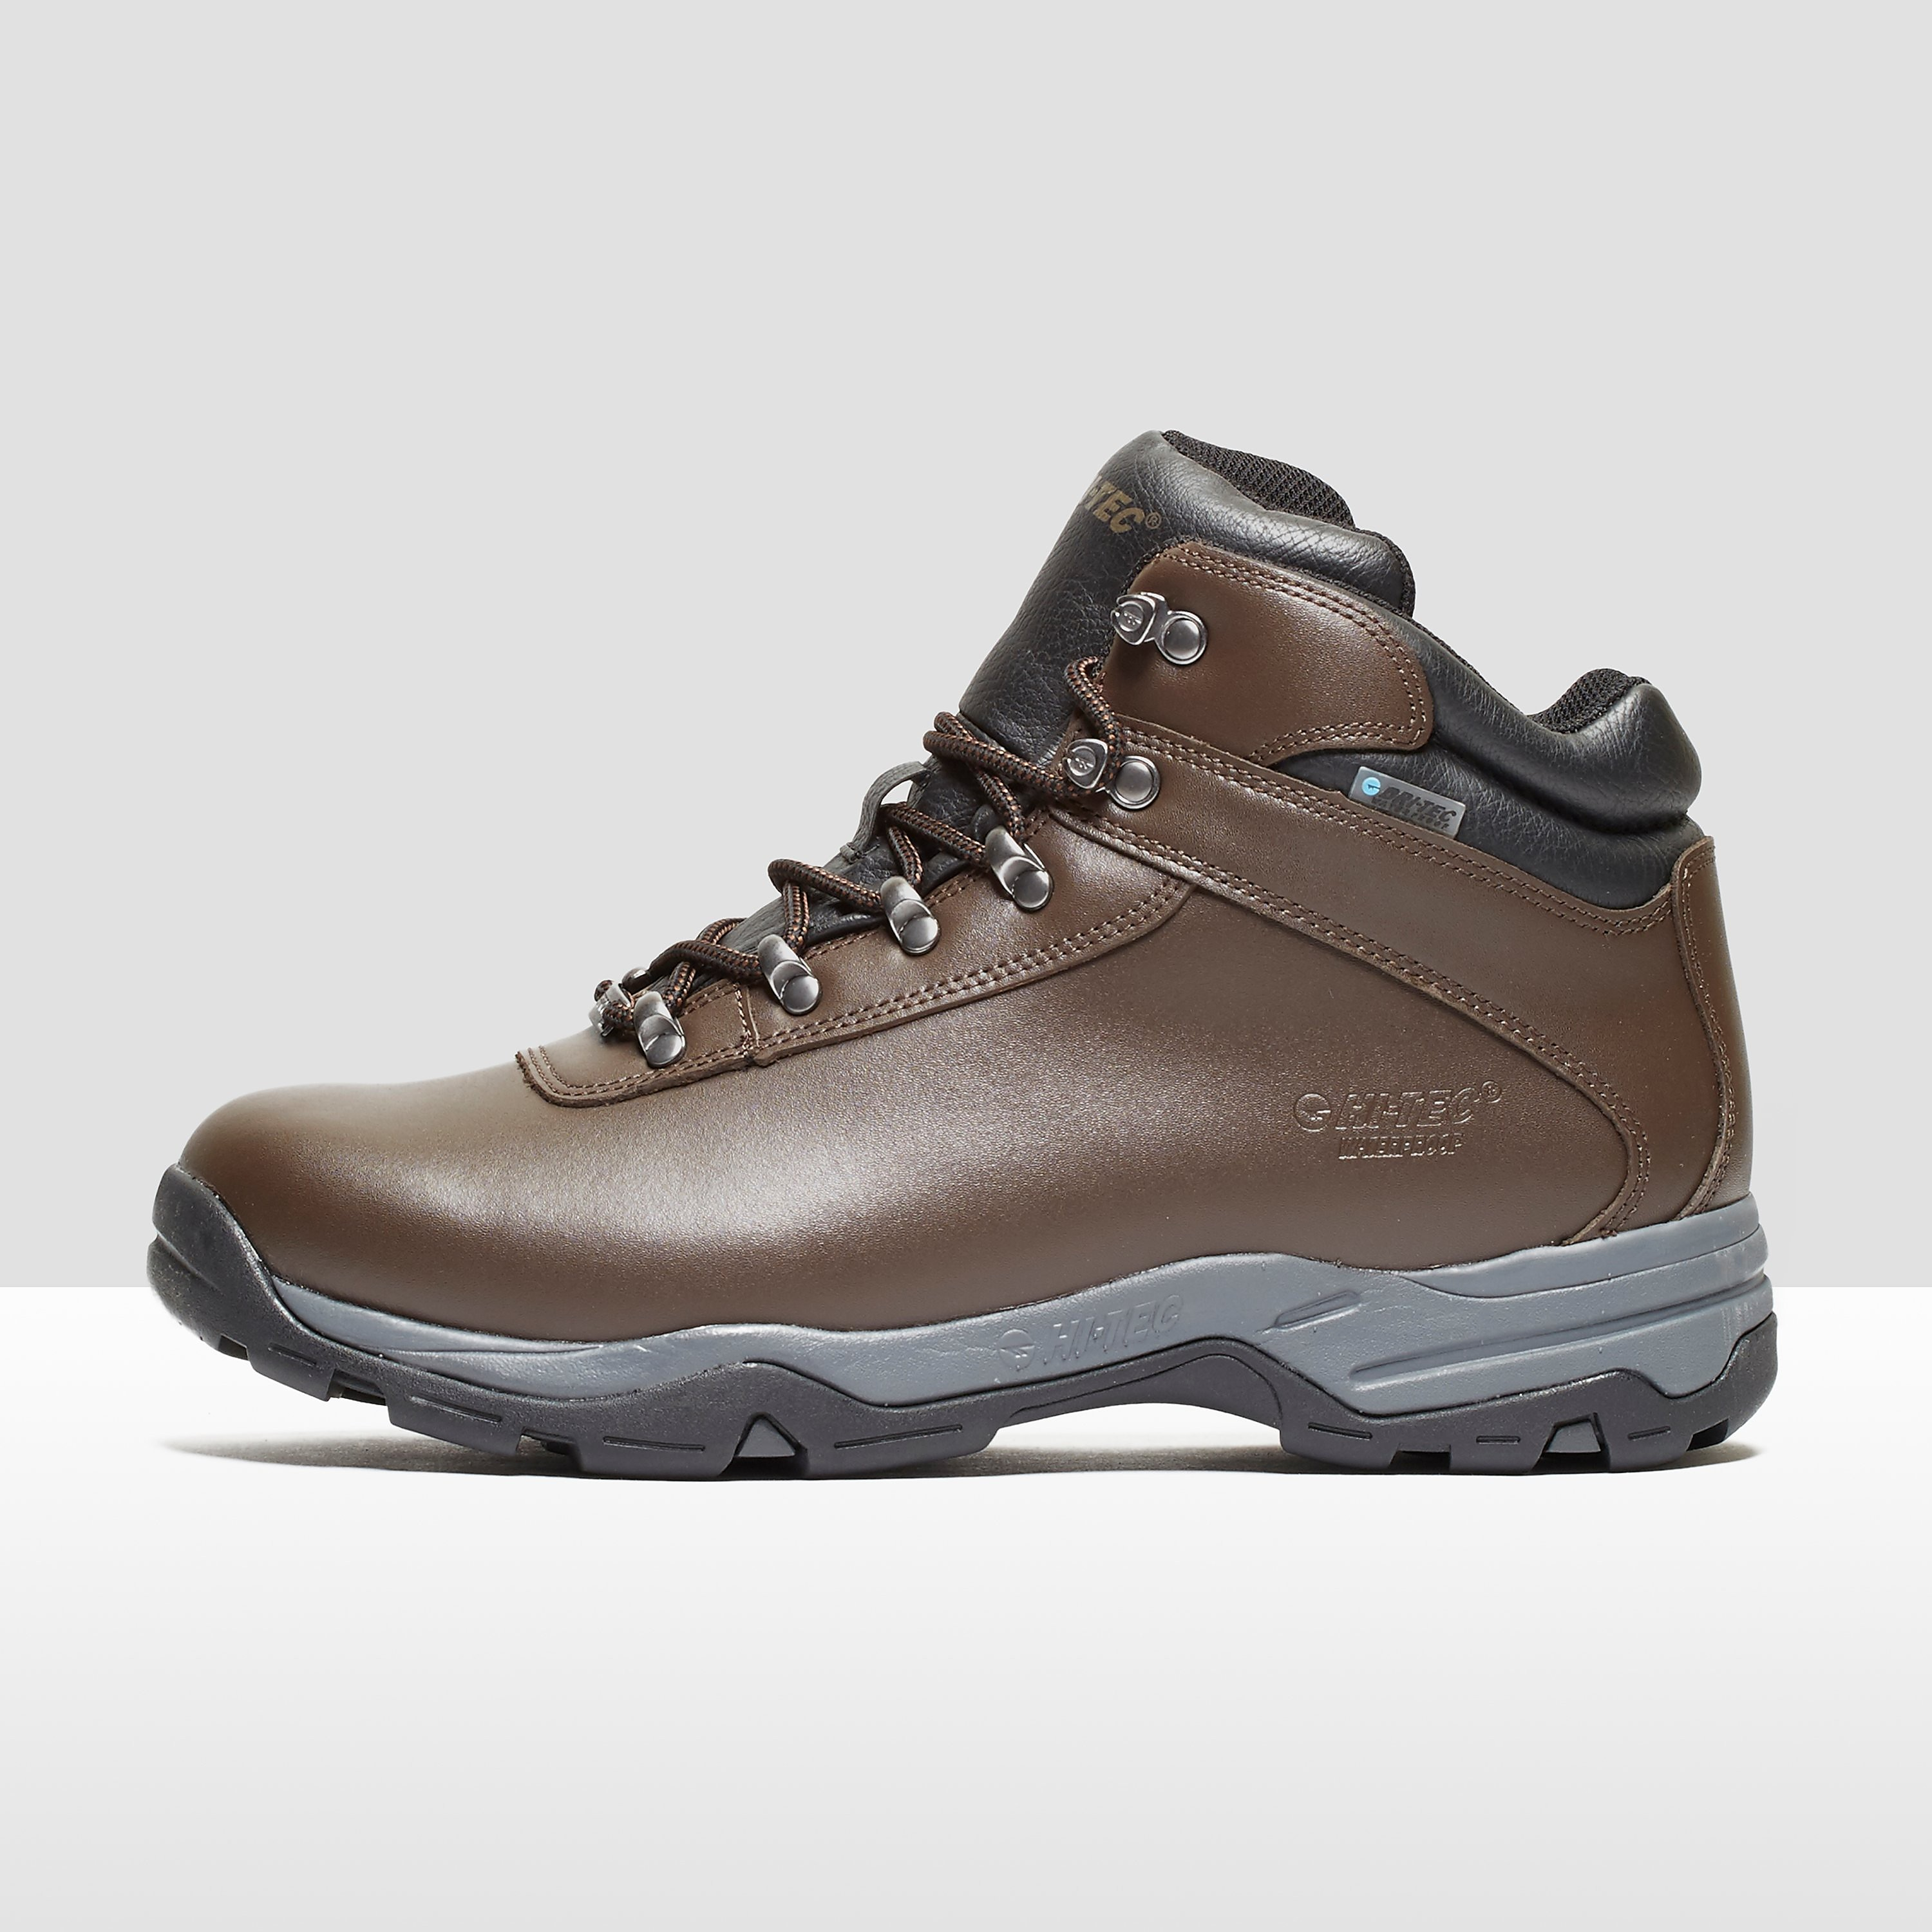 Hi Tec Eurotrek III Waterproof Boot